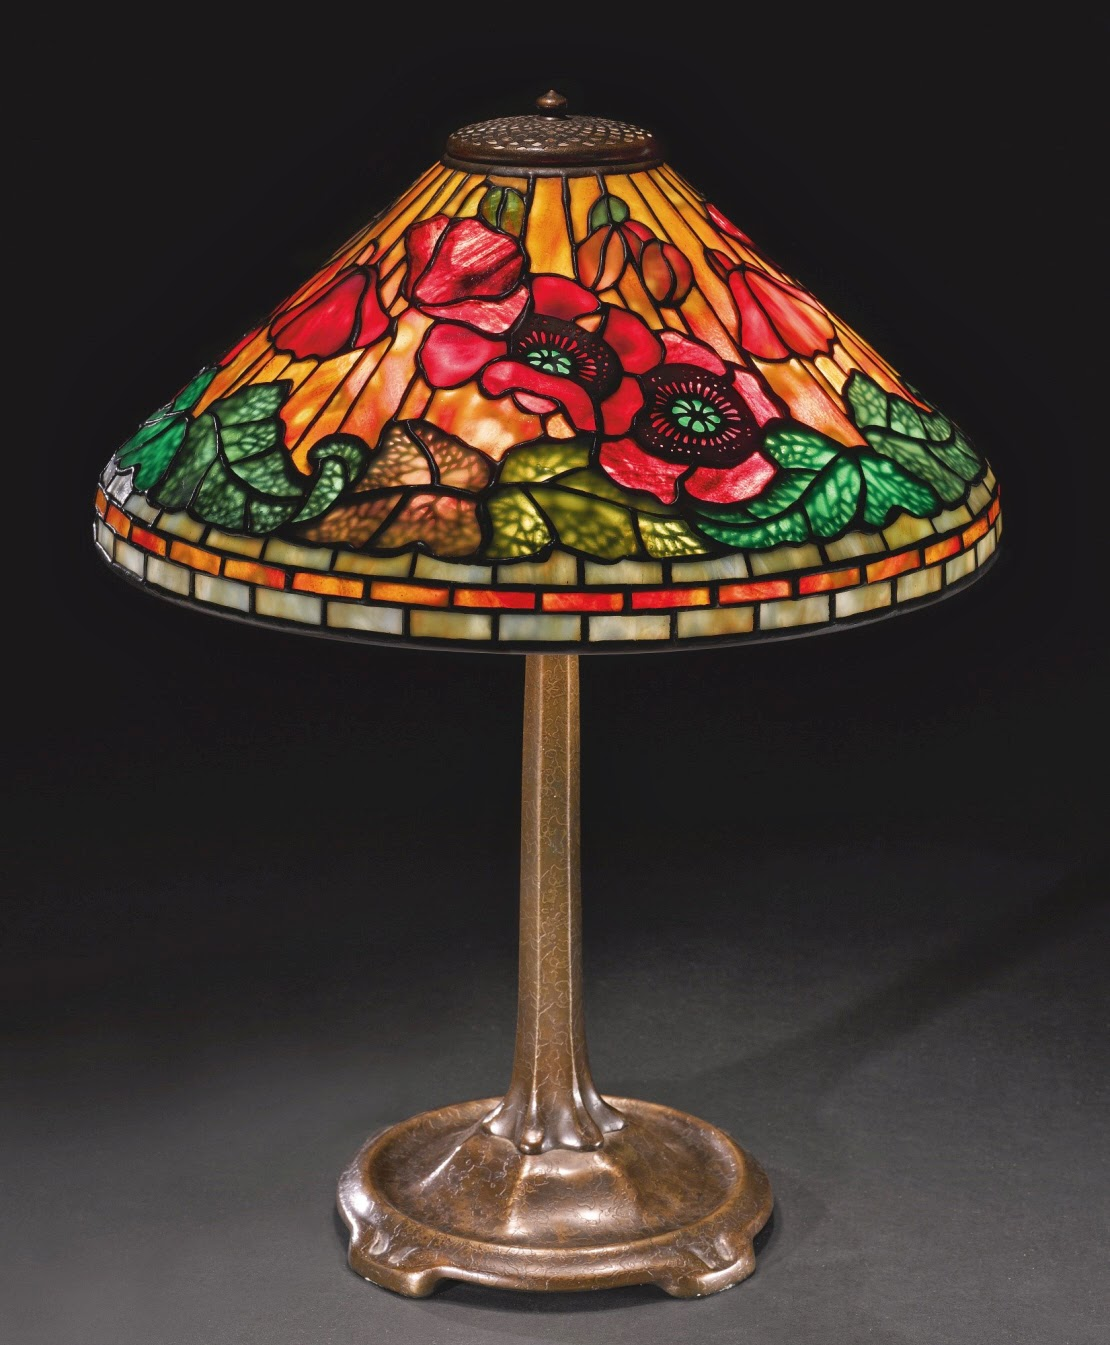 Authentic Tiffany Lamp Expert March 2014